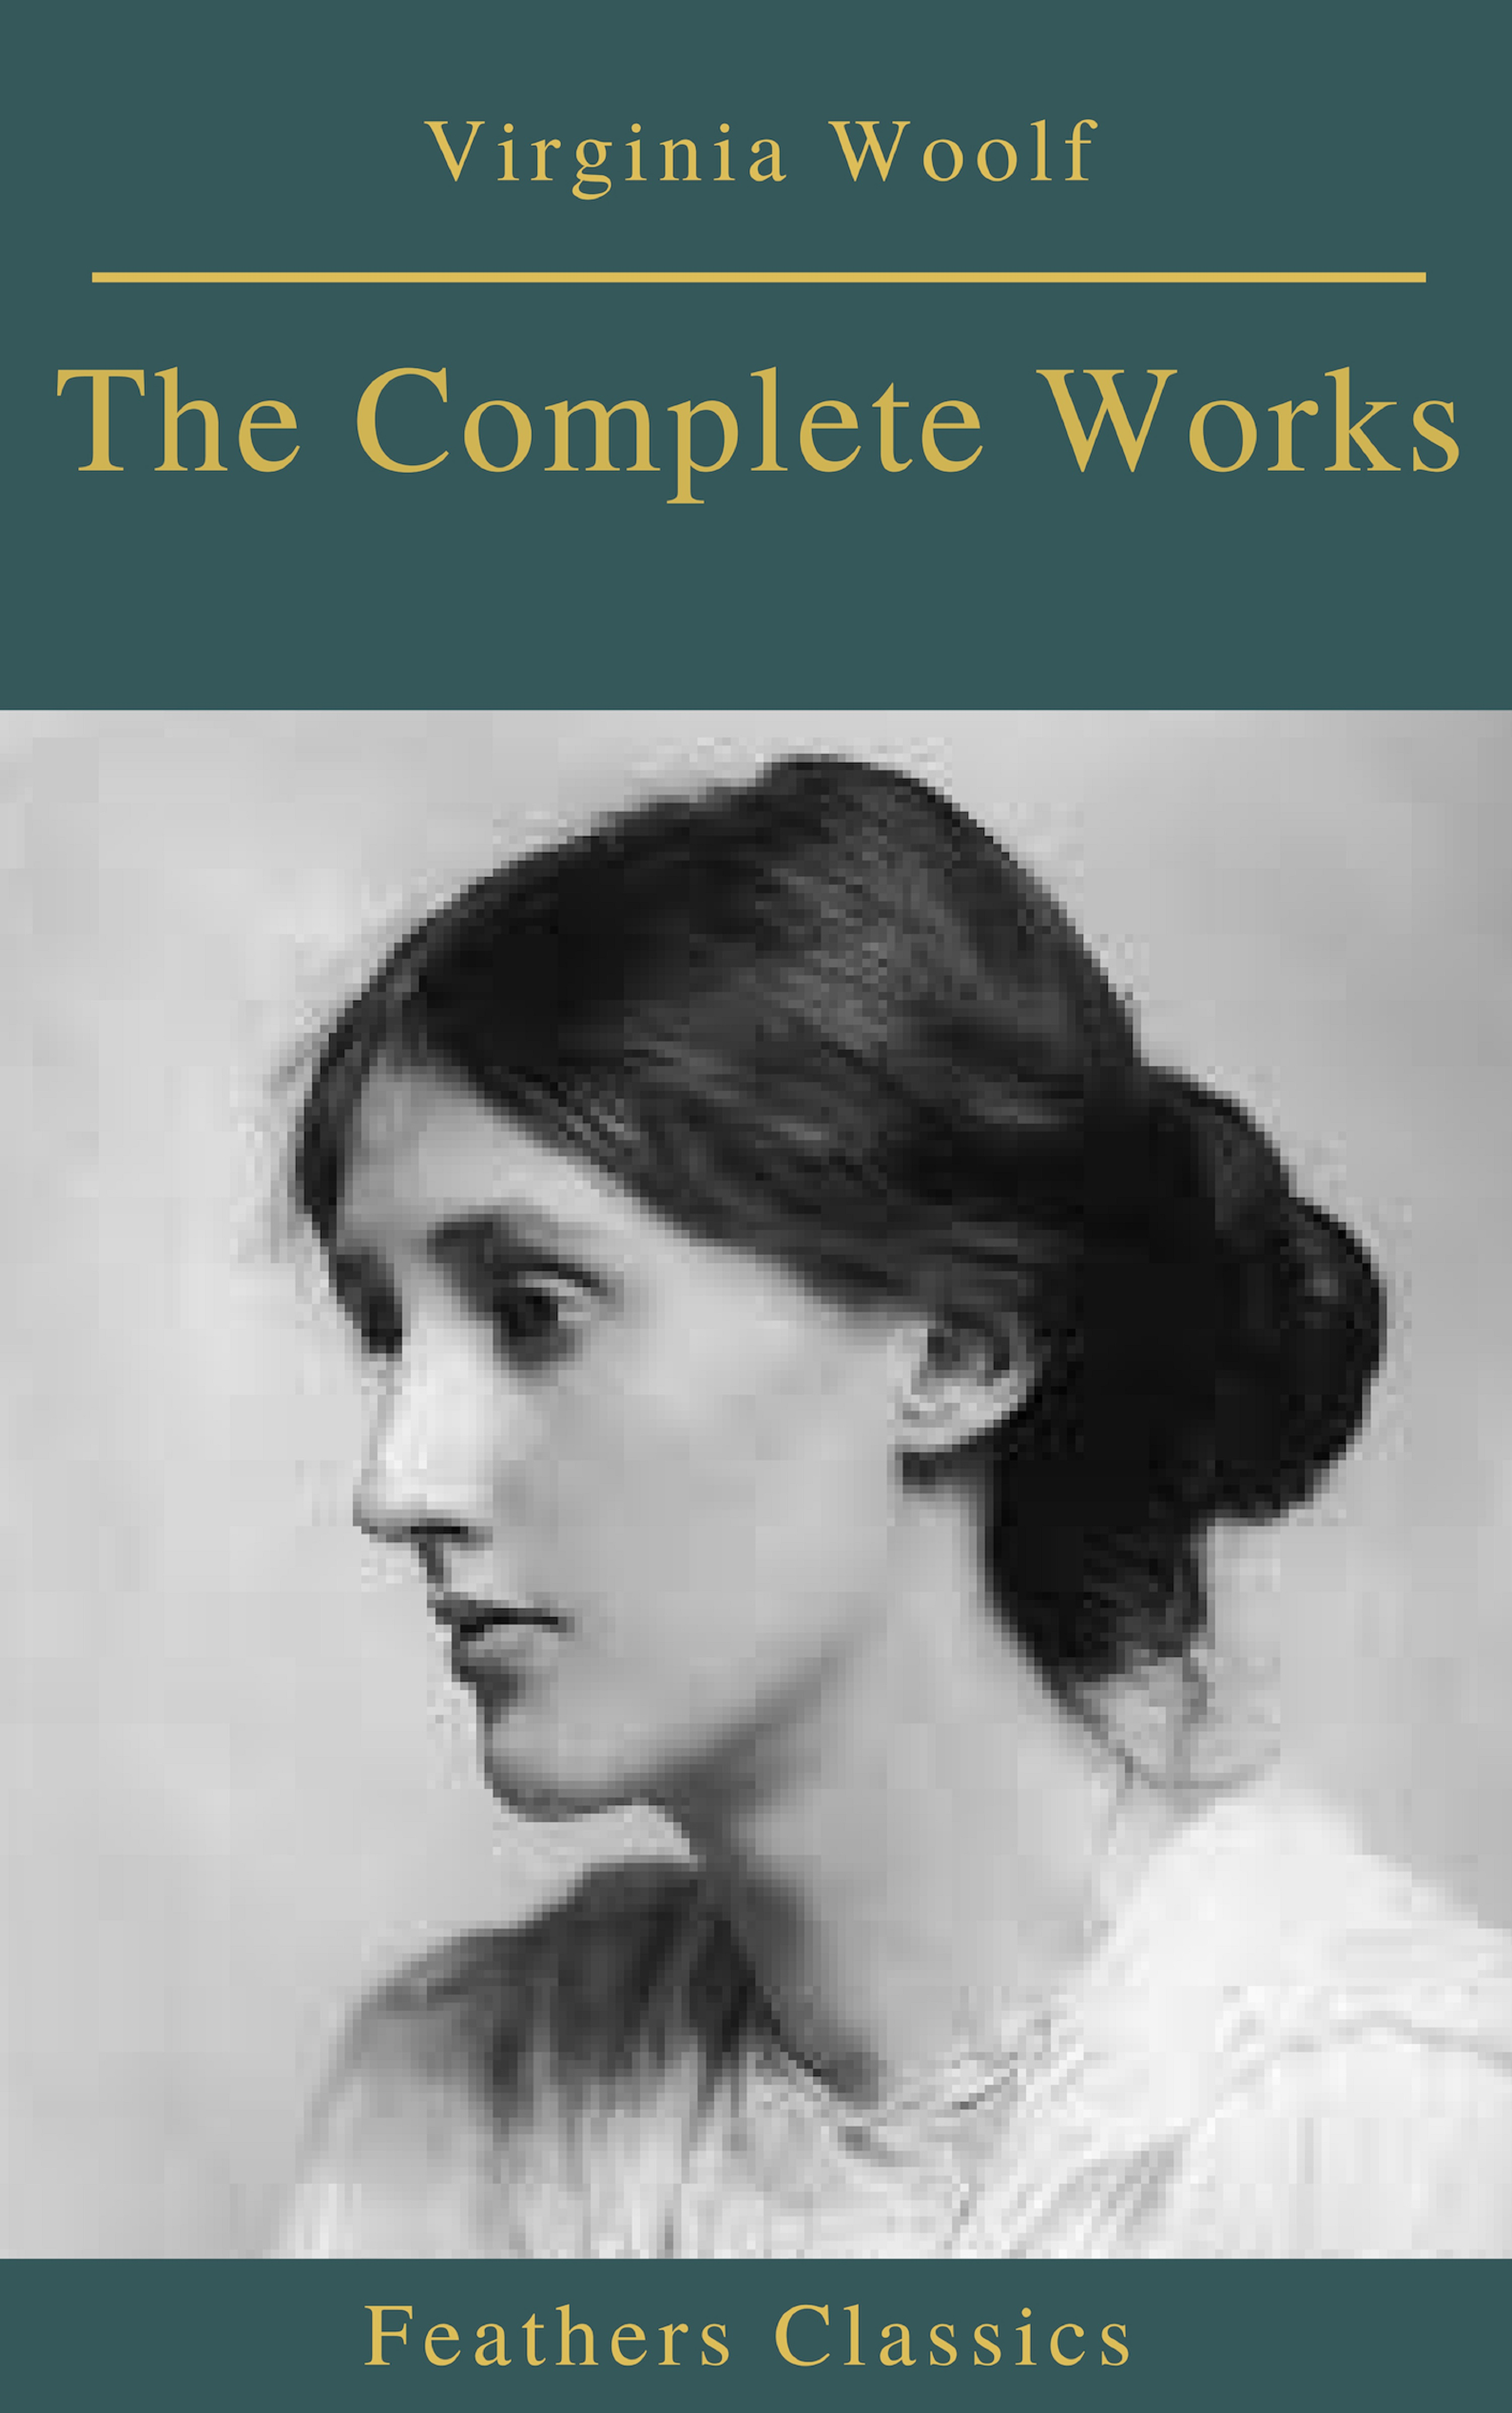 Feathers Classics The Complete Works of Virginia Woolf (Feathers Classics) virginia woolf virginia woolf the complete works